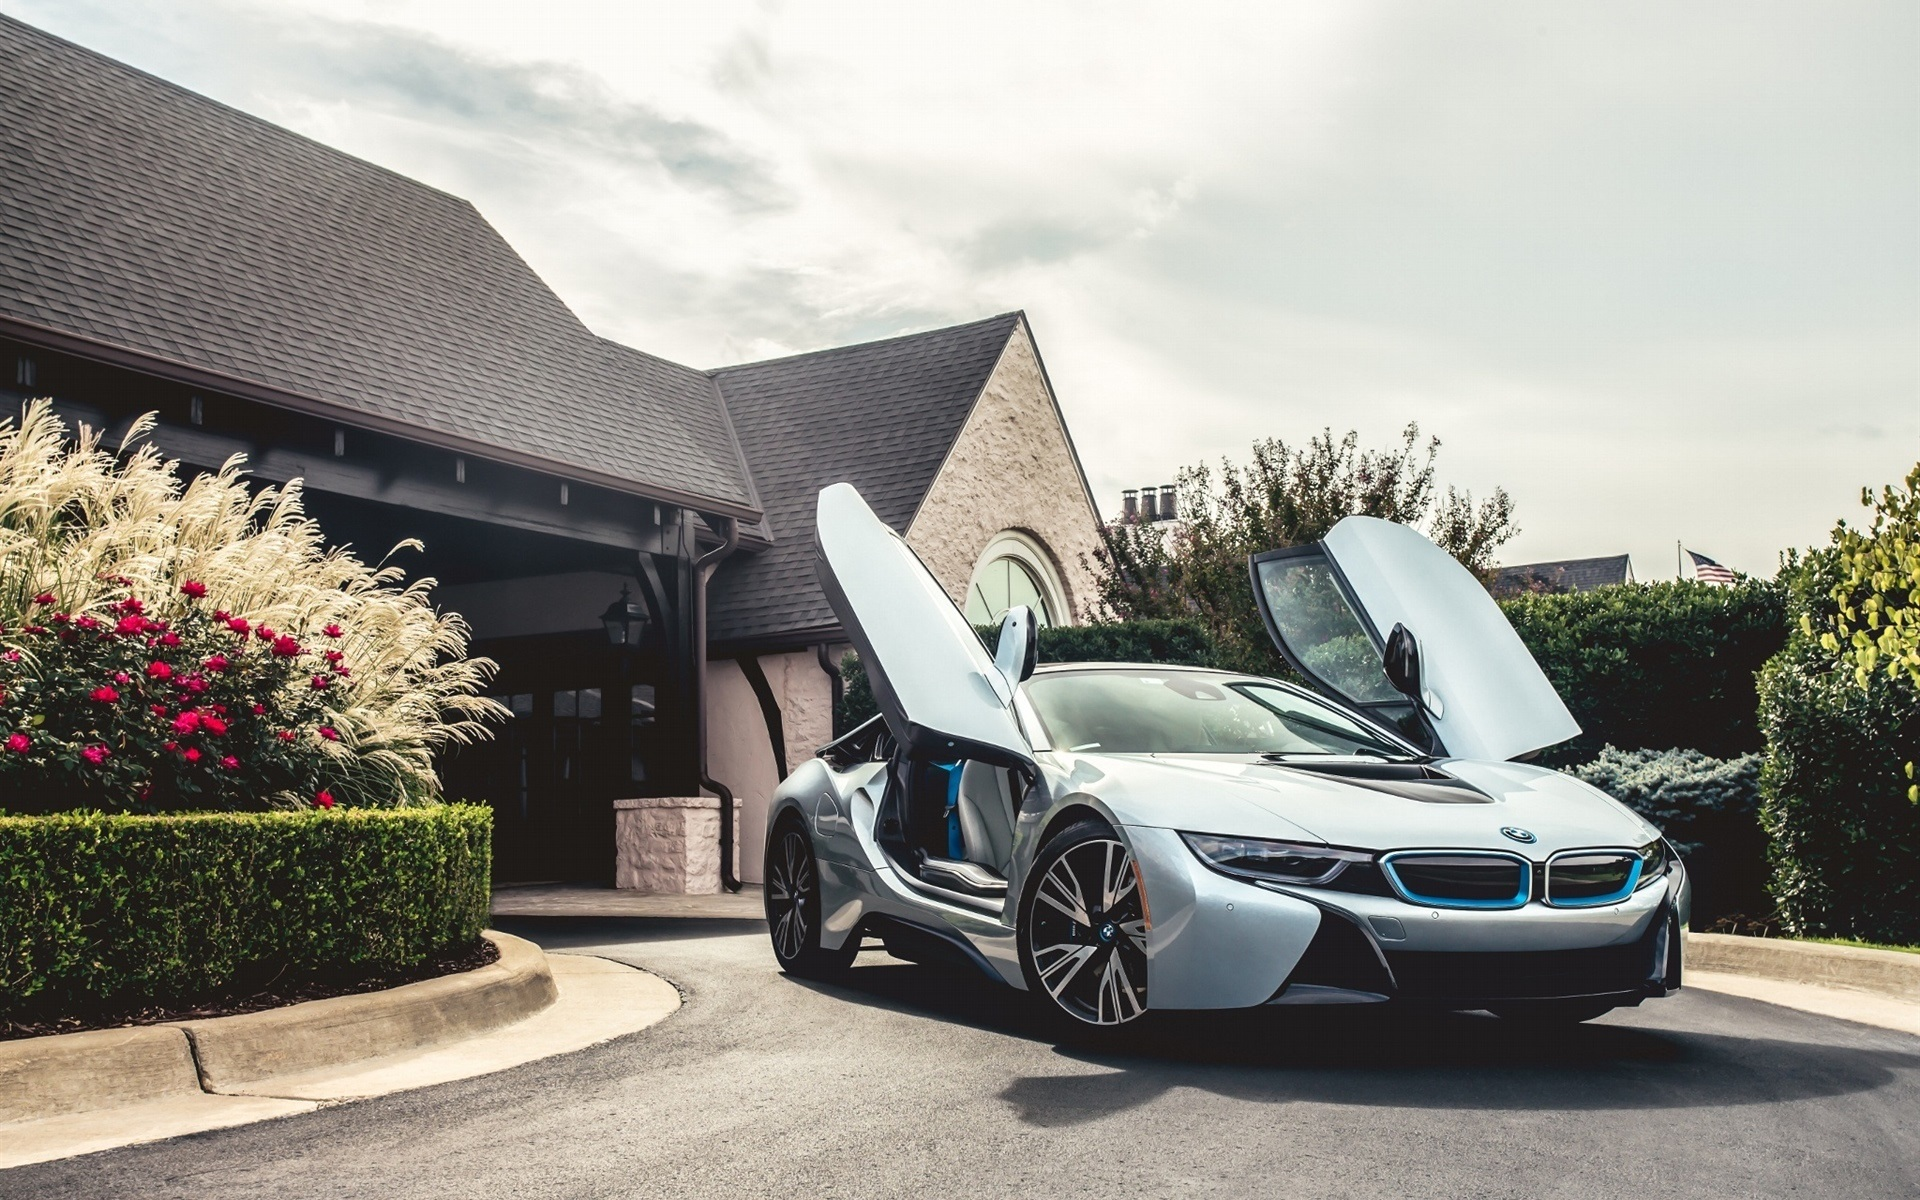 bmw i8 silbernen elektro hybrid auto 1920x1200 hd. Black Bedroom Furniture Sets. Home Design Ideas